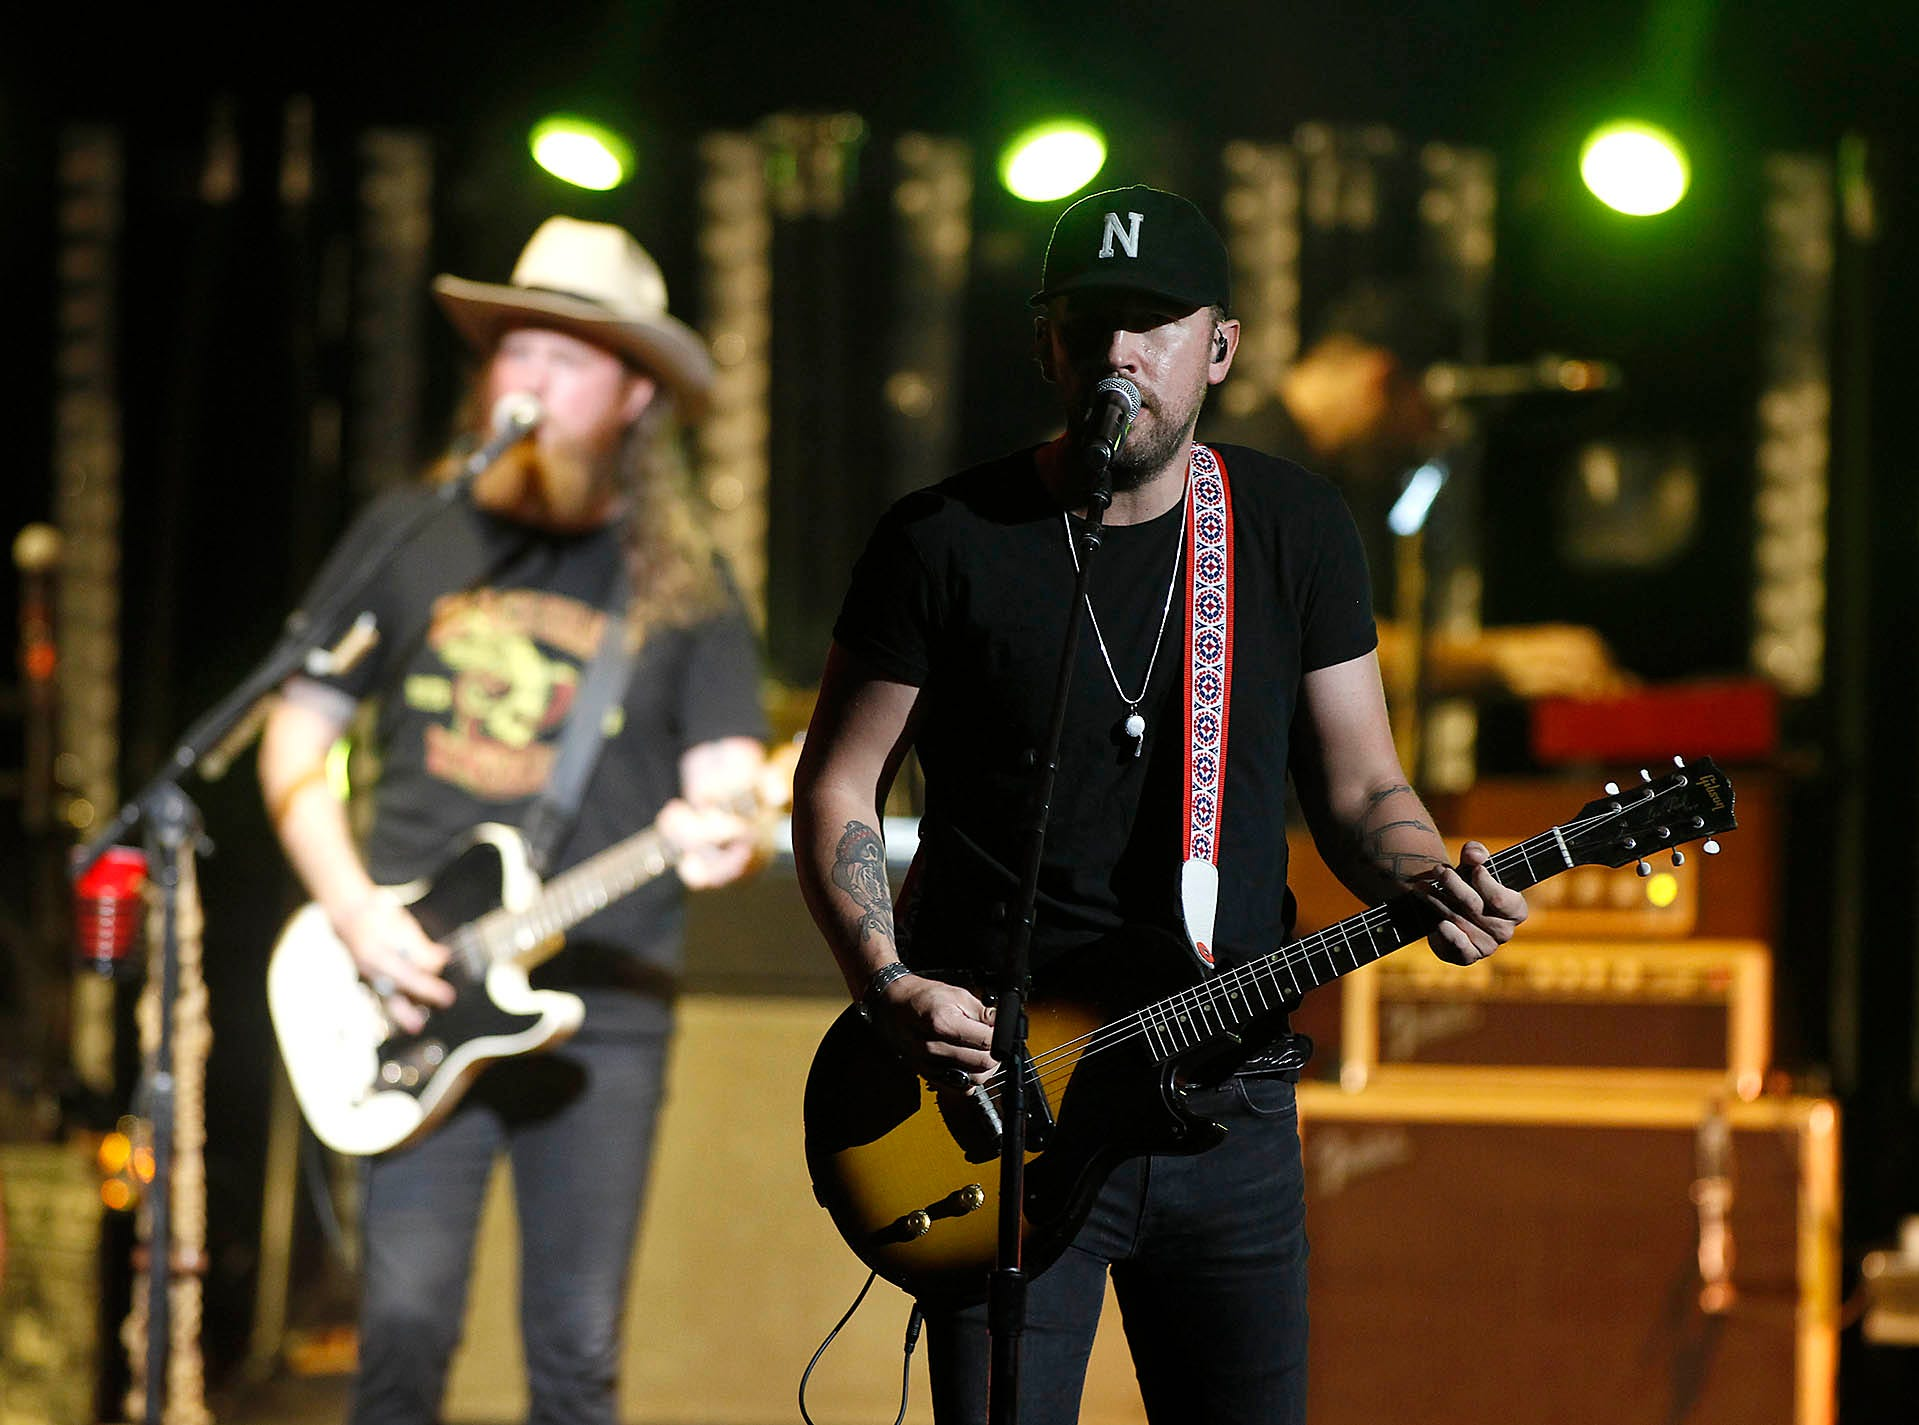 Brothers Osborne open for Dierks Bentley during his Mountain High Tour at Ak-Chin Pavilion in Phoenix on Saturday, Sept. 29, 2018.